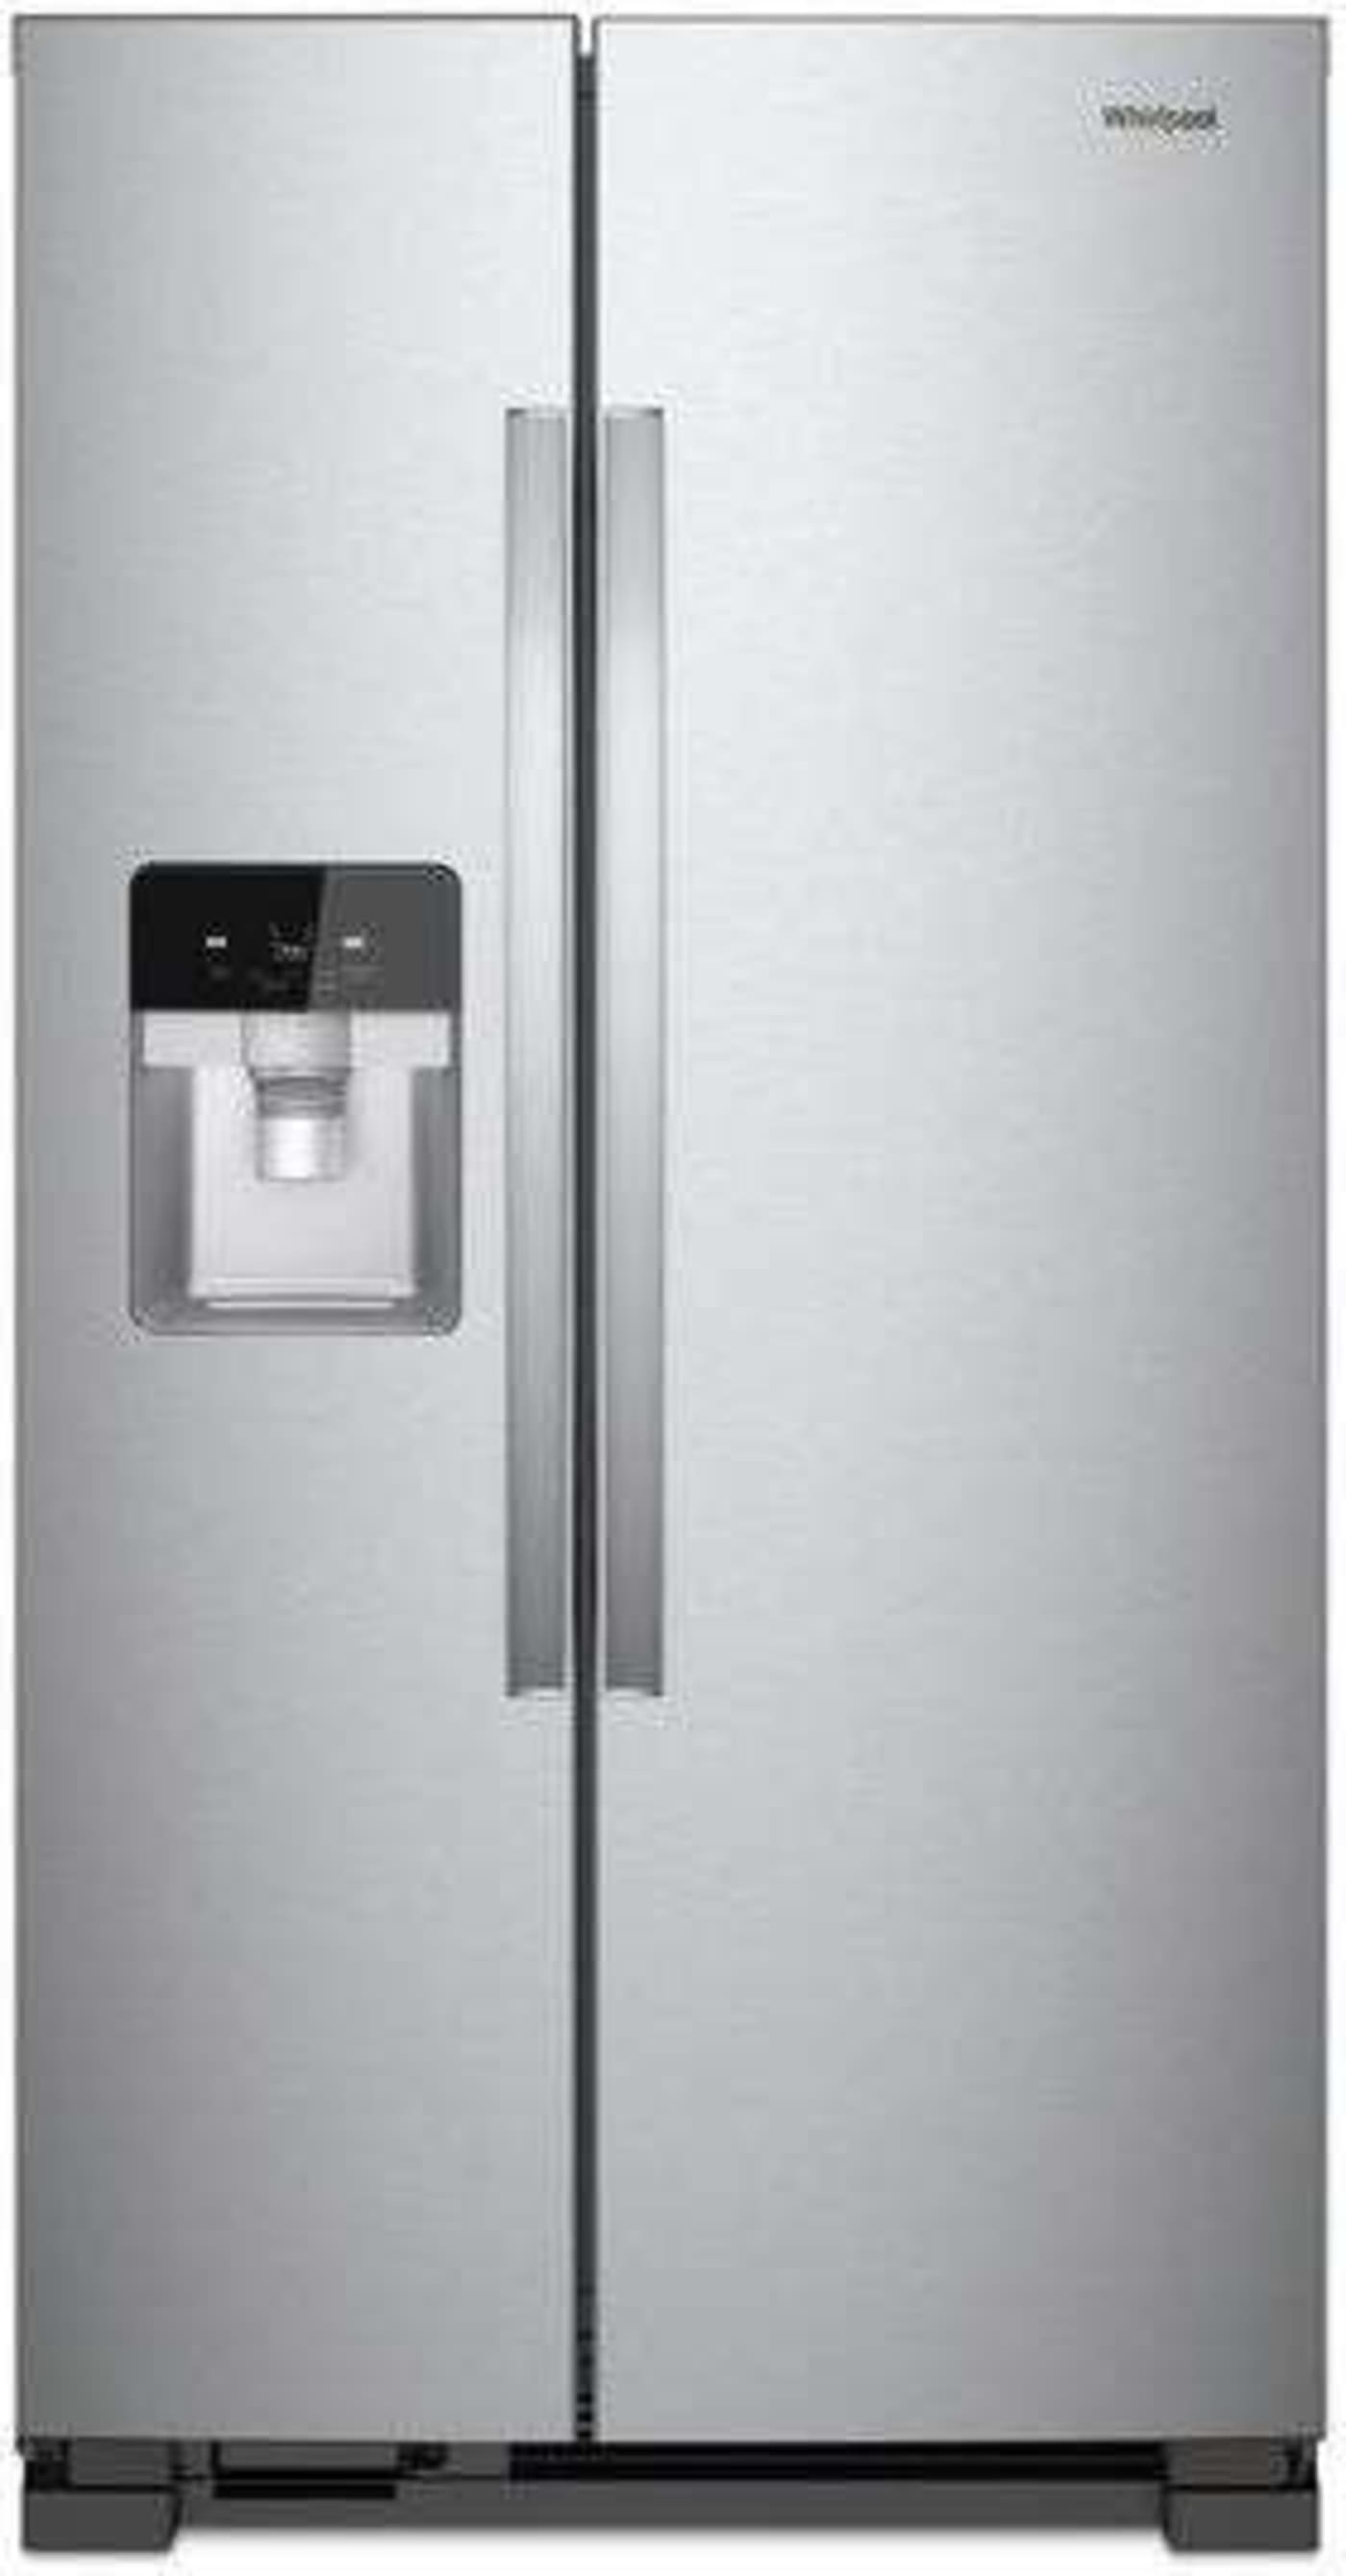 Wrs321sdhz By Whirlpool Side By Side Refrigerators